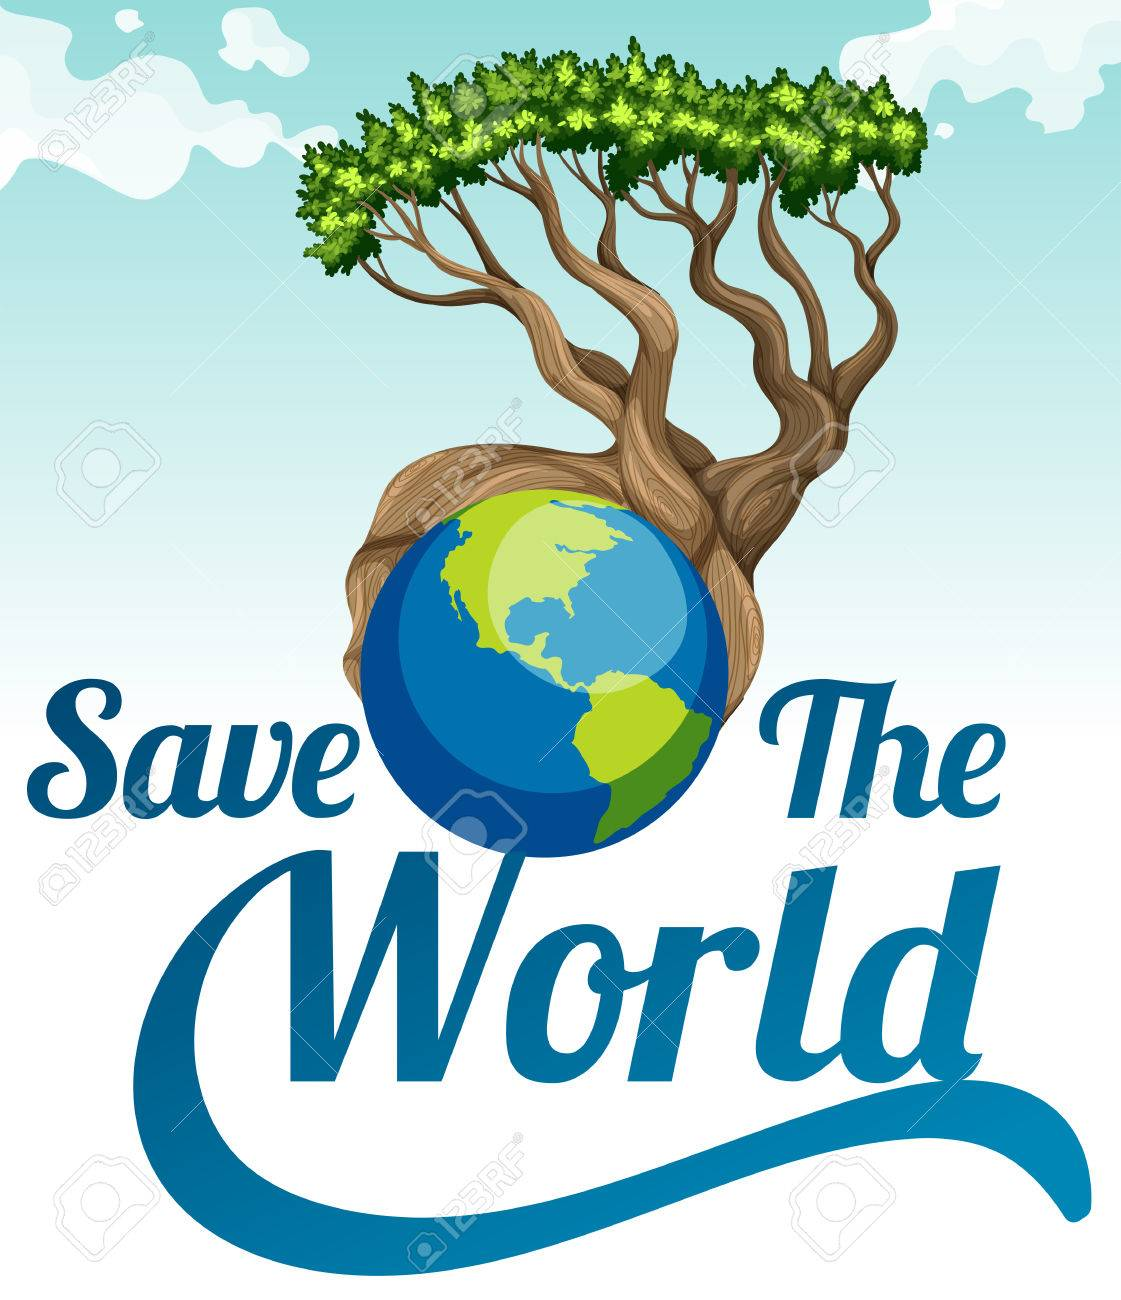 Great Save The World Poster With Earth And Tree Illustration Stock Vector    46286041